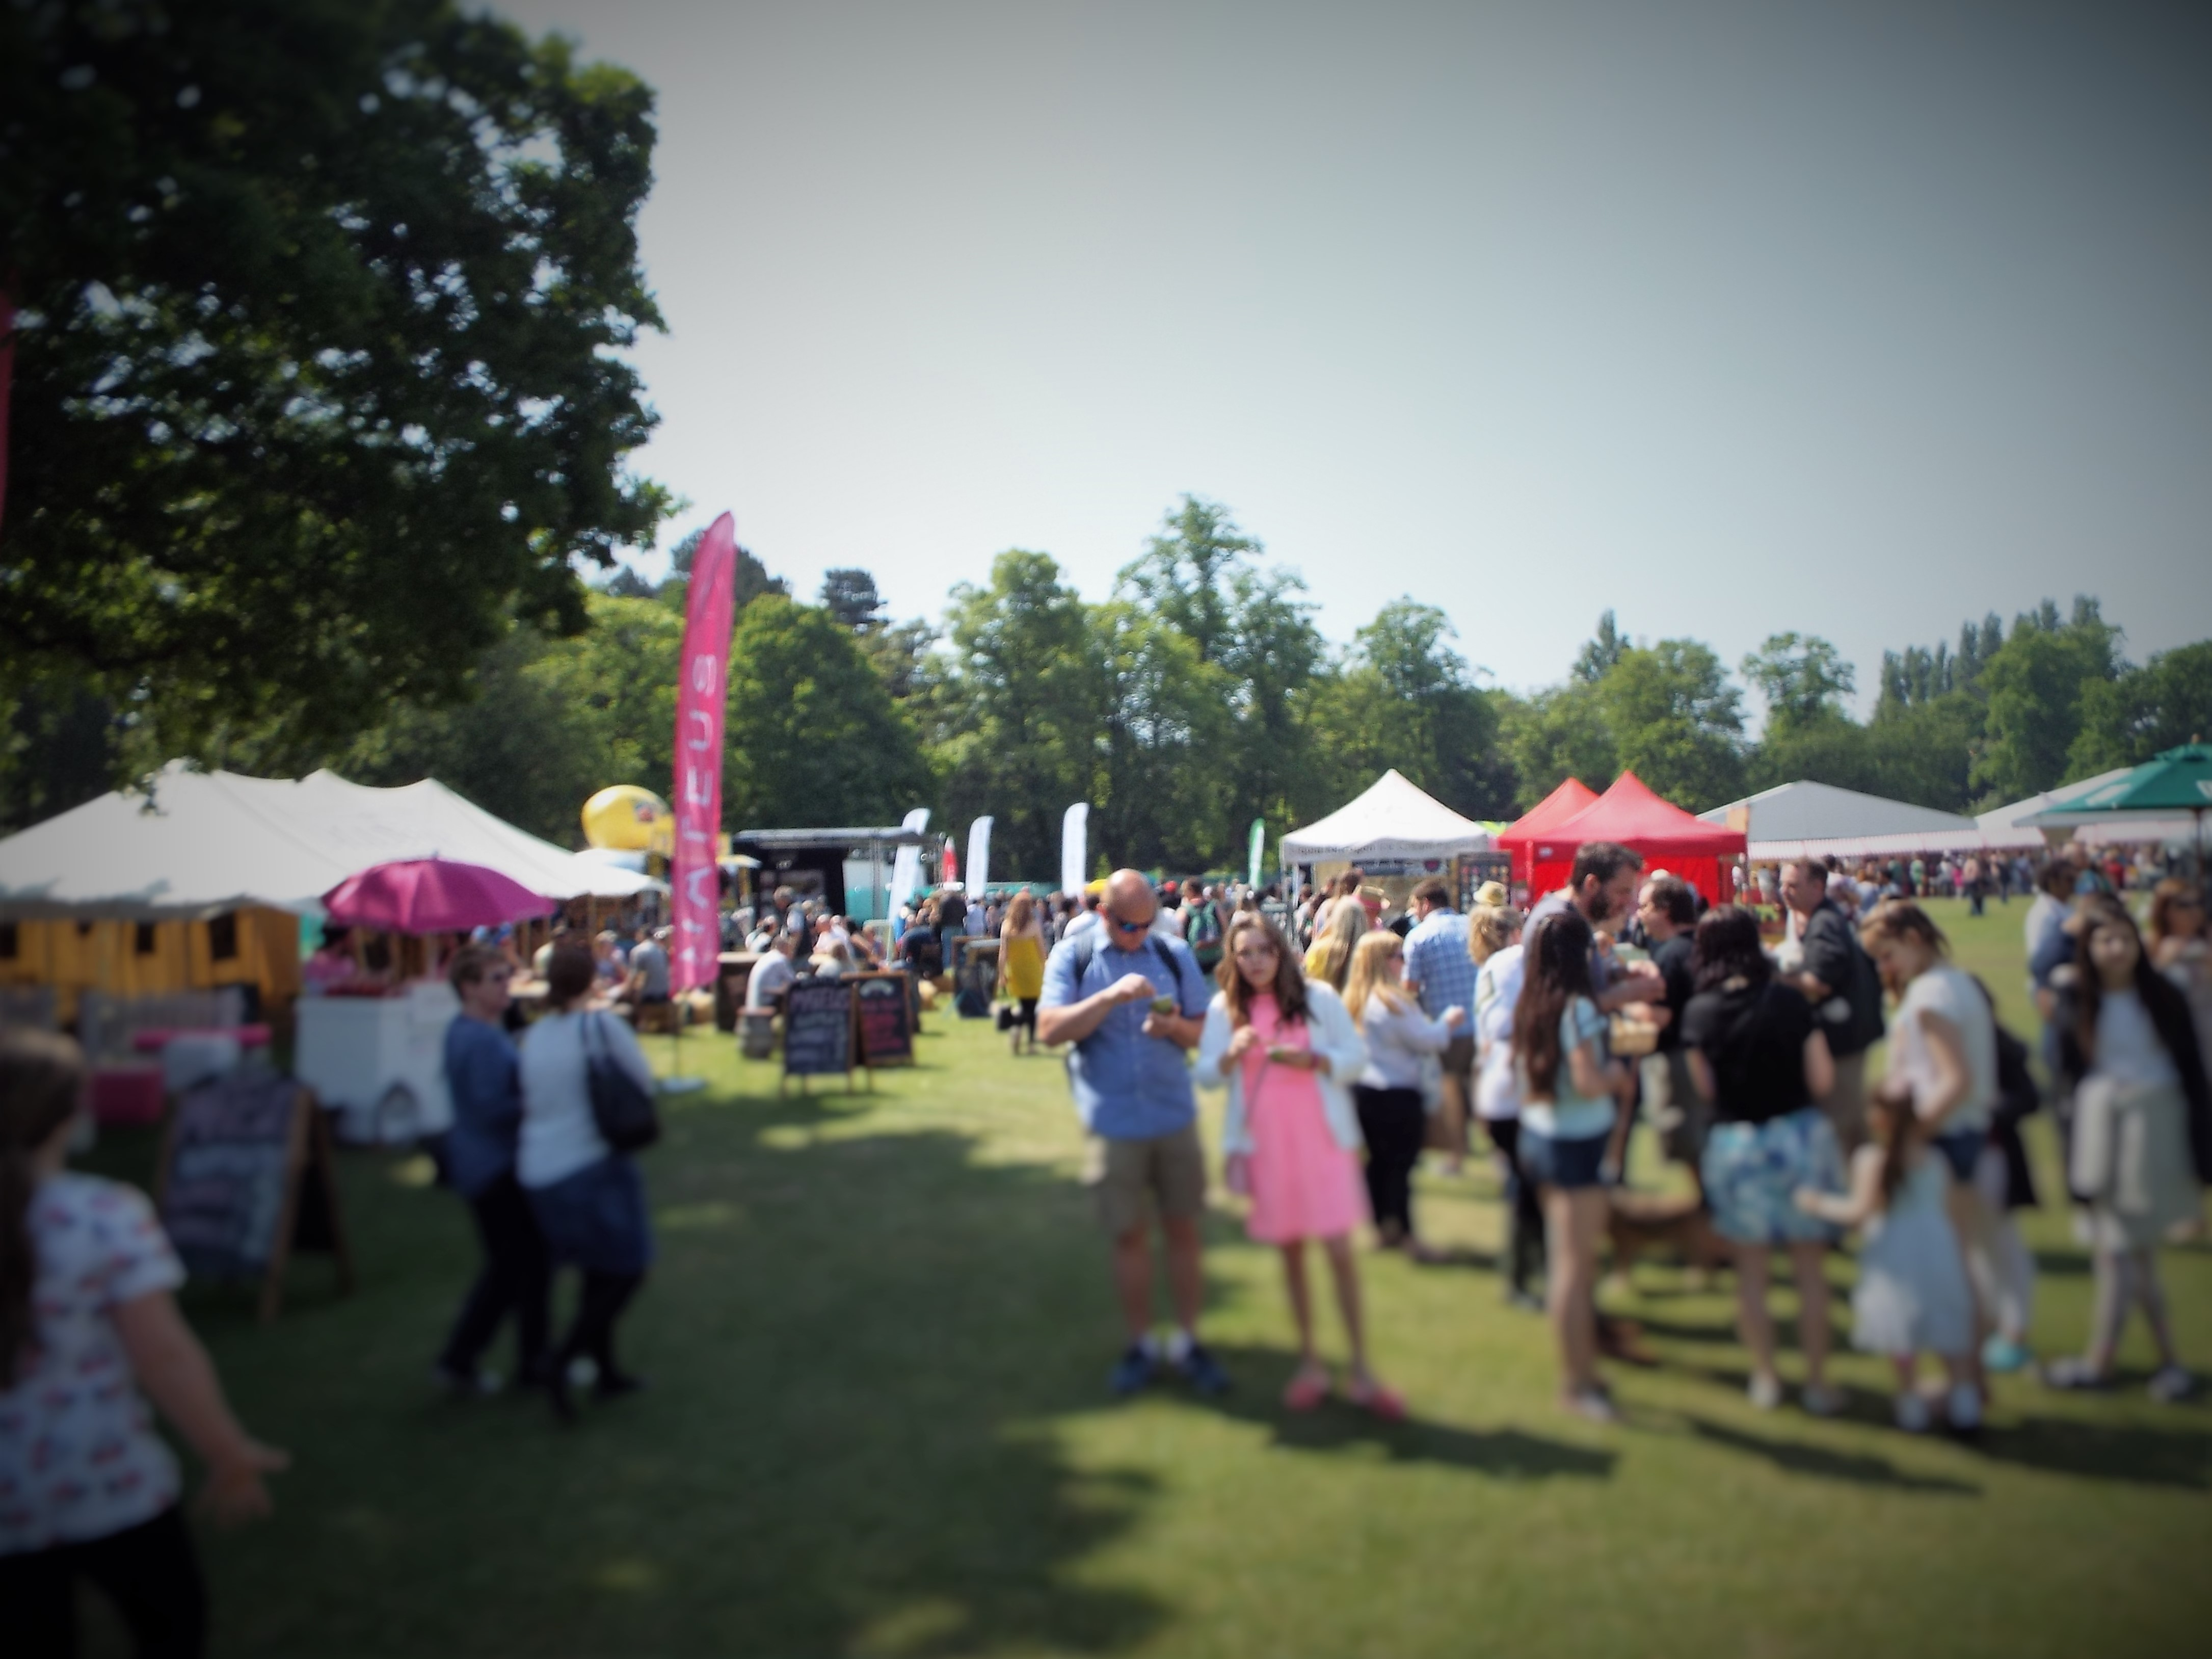 Feeding Time at Foodies Festival